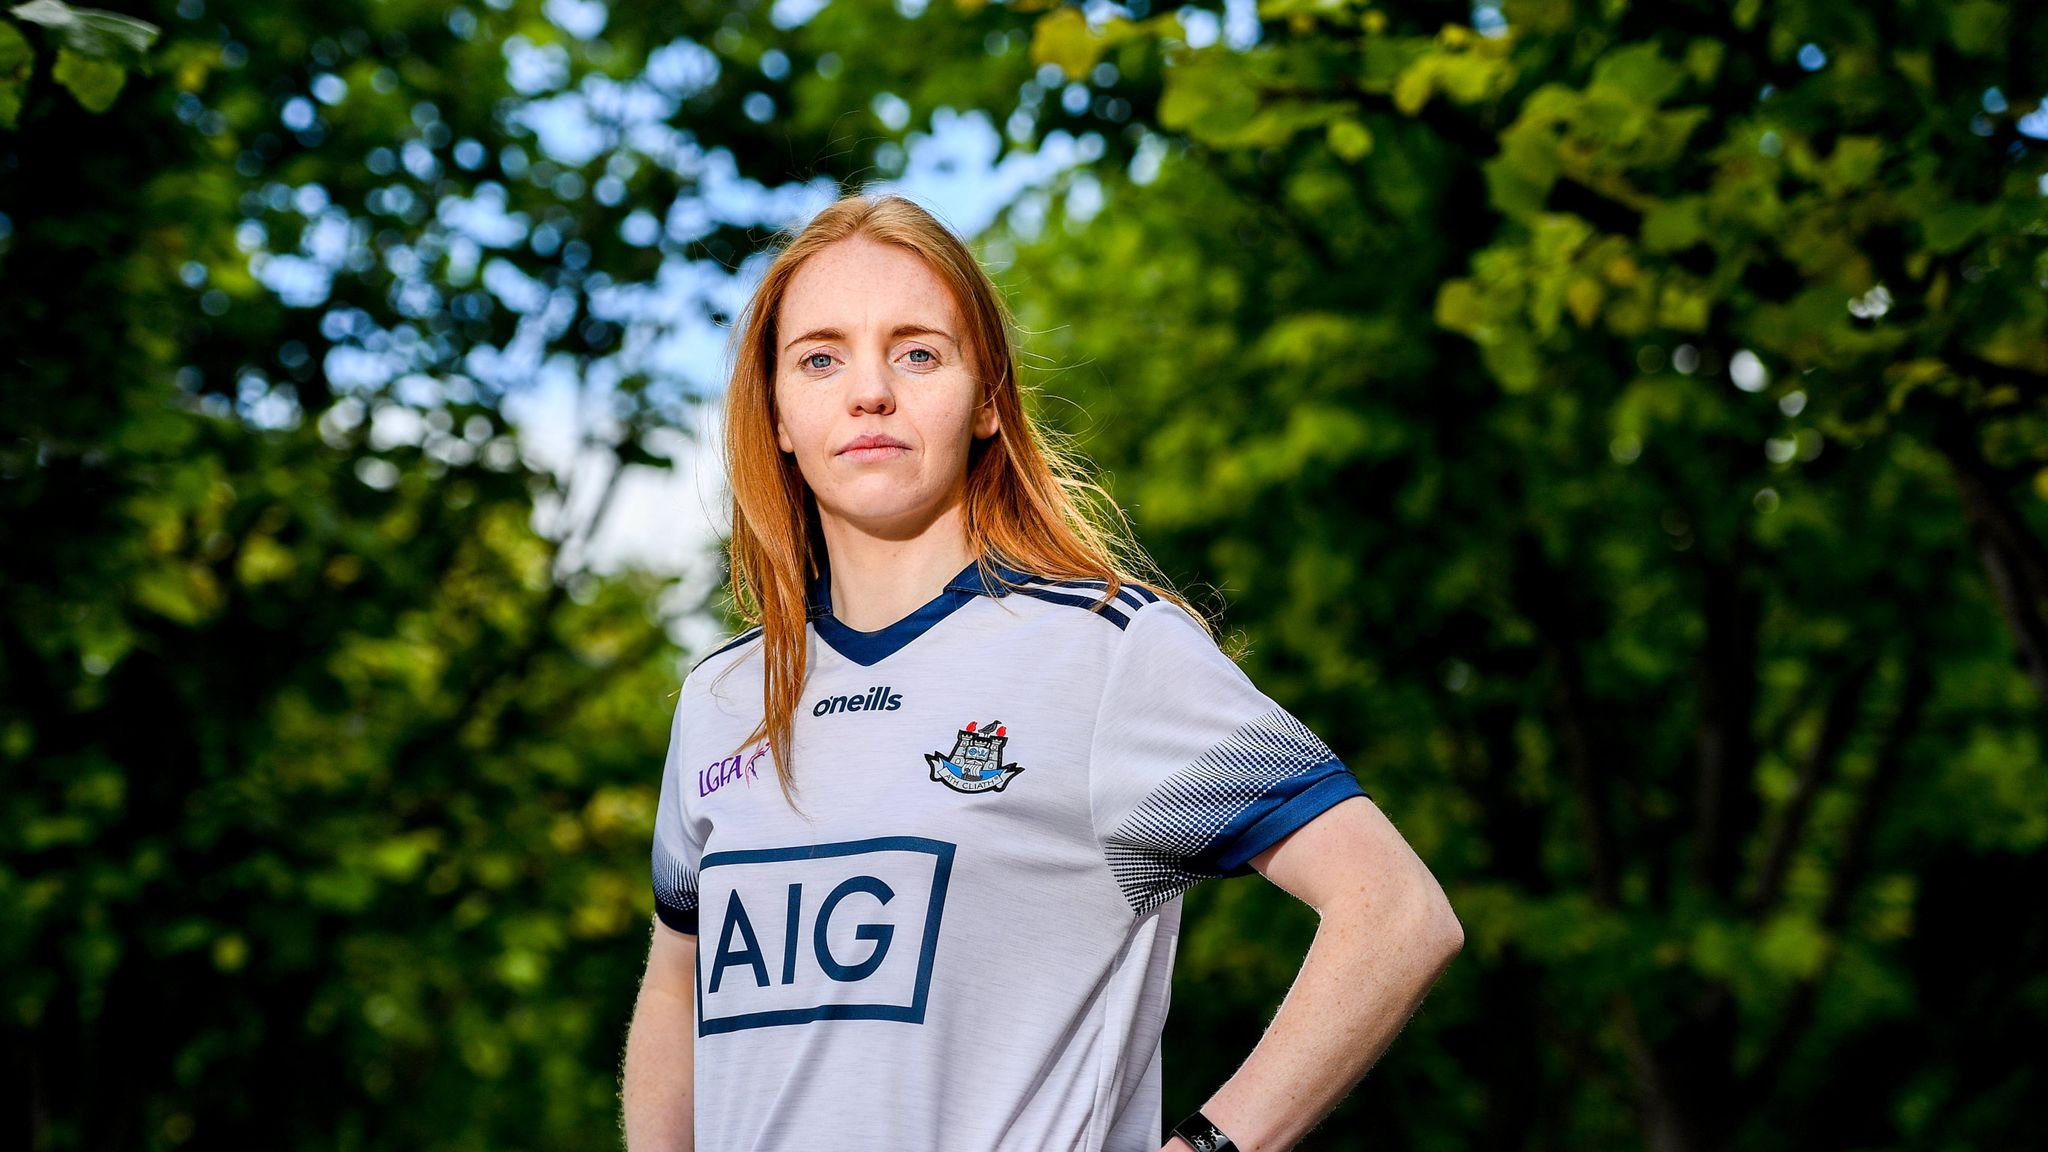 Dublin's Ciara Trant believes Stephen Cluxton has changed